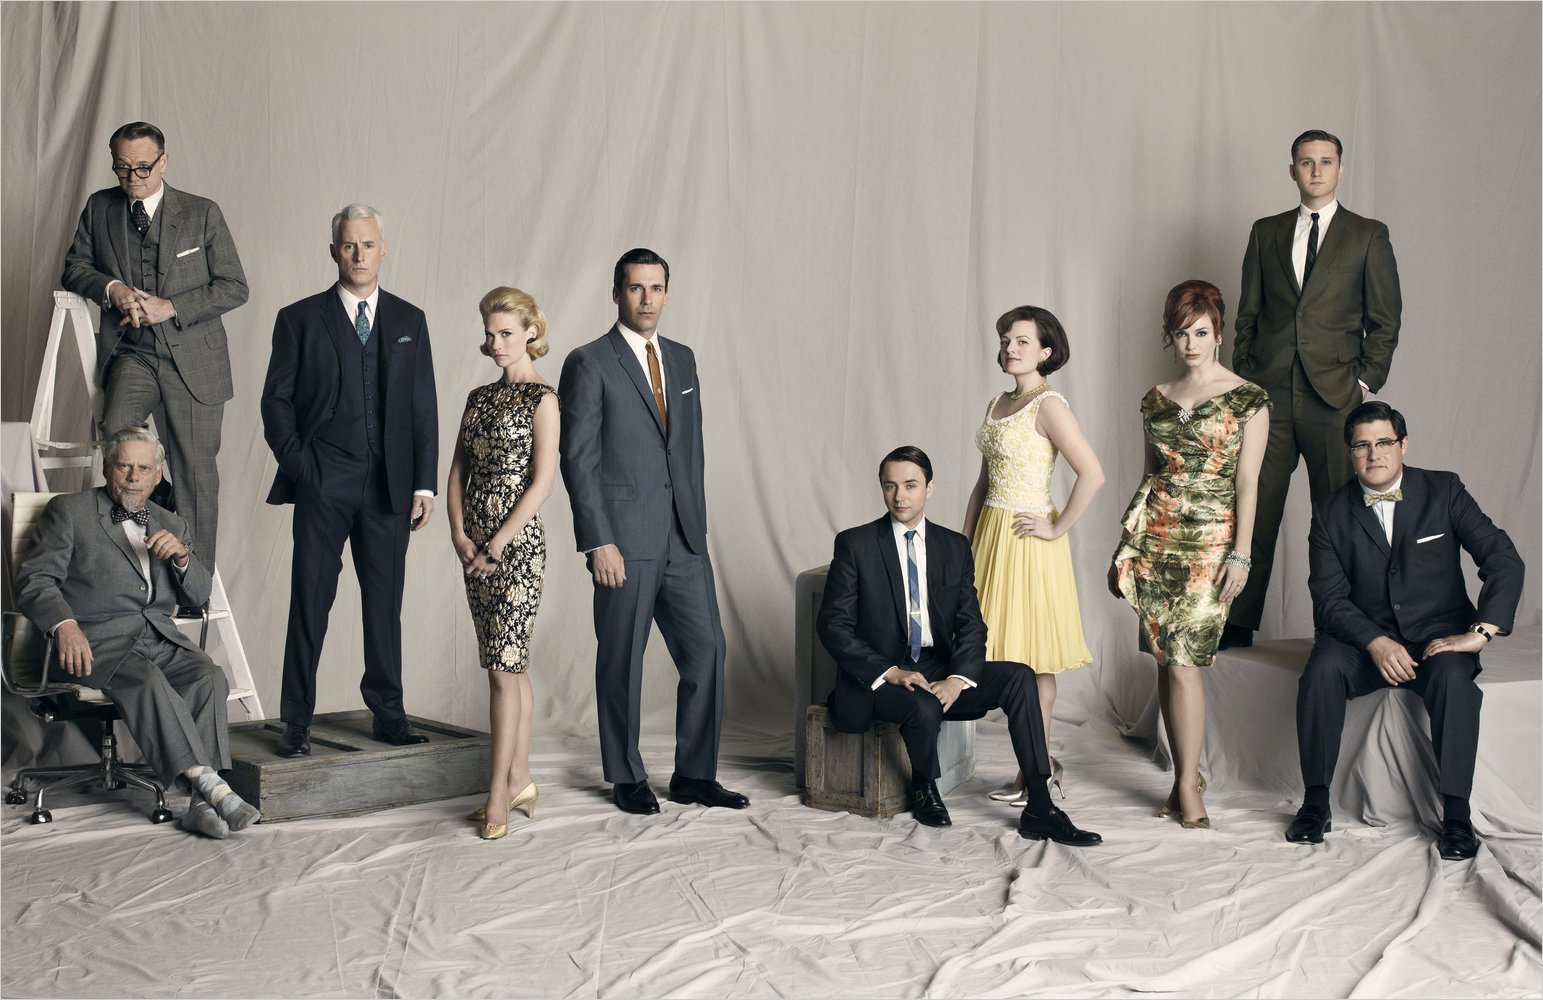 Mad Men is an American period drama television series created by Matthew Weiner and produced by Lionsgate Television. The series premiered on July 19, in which users submit photos of themselves in Mad Men style and one winner receives the opportunity for a walk-on role in an upcoming season.